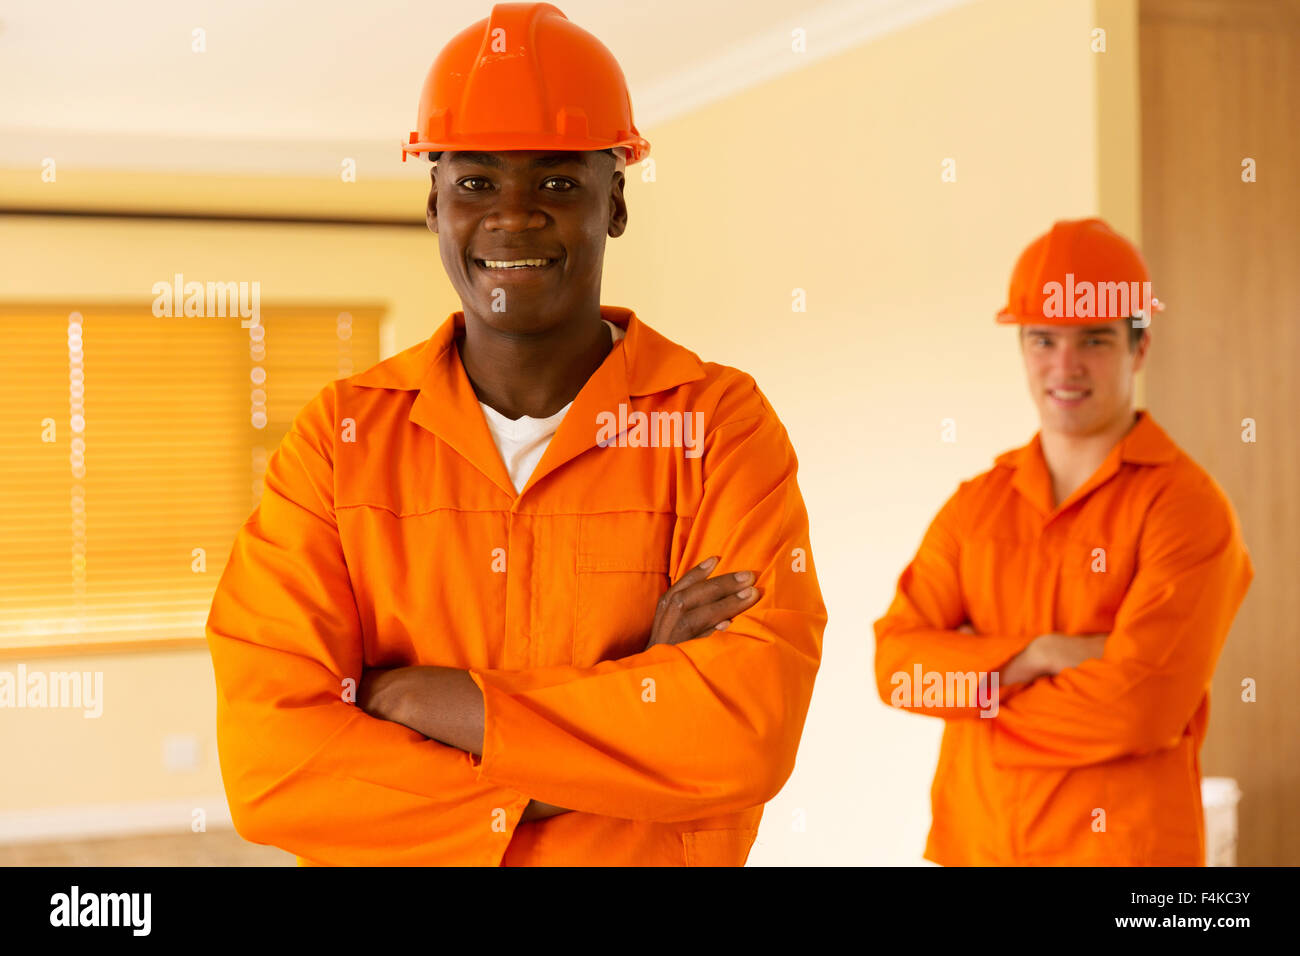 portrait of African workman and co-worker on background - Stock Image